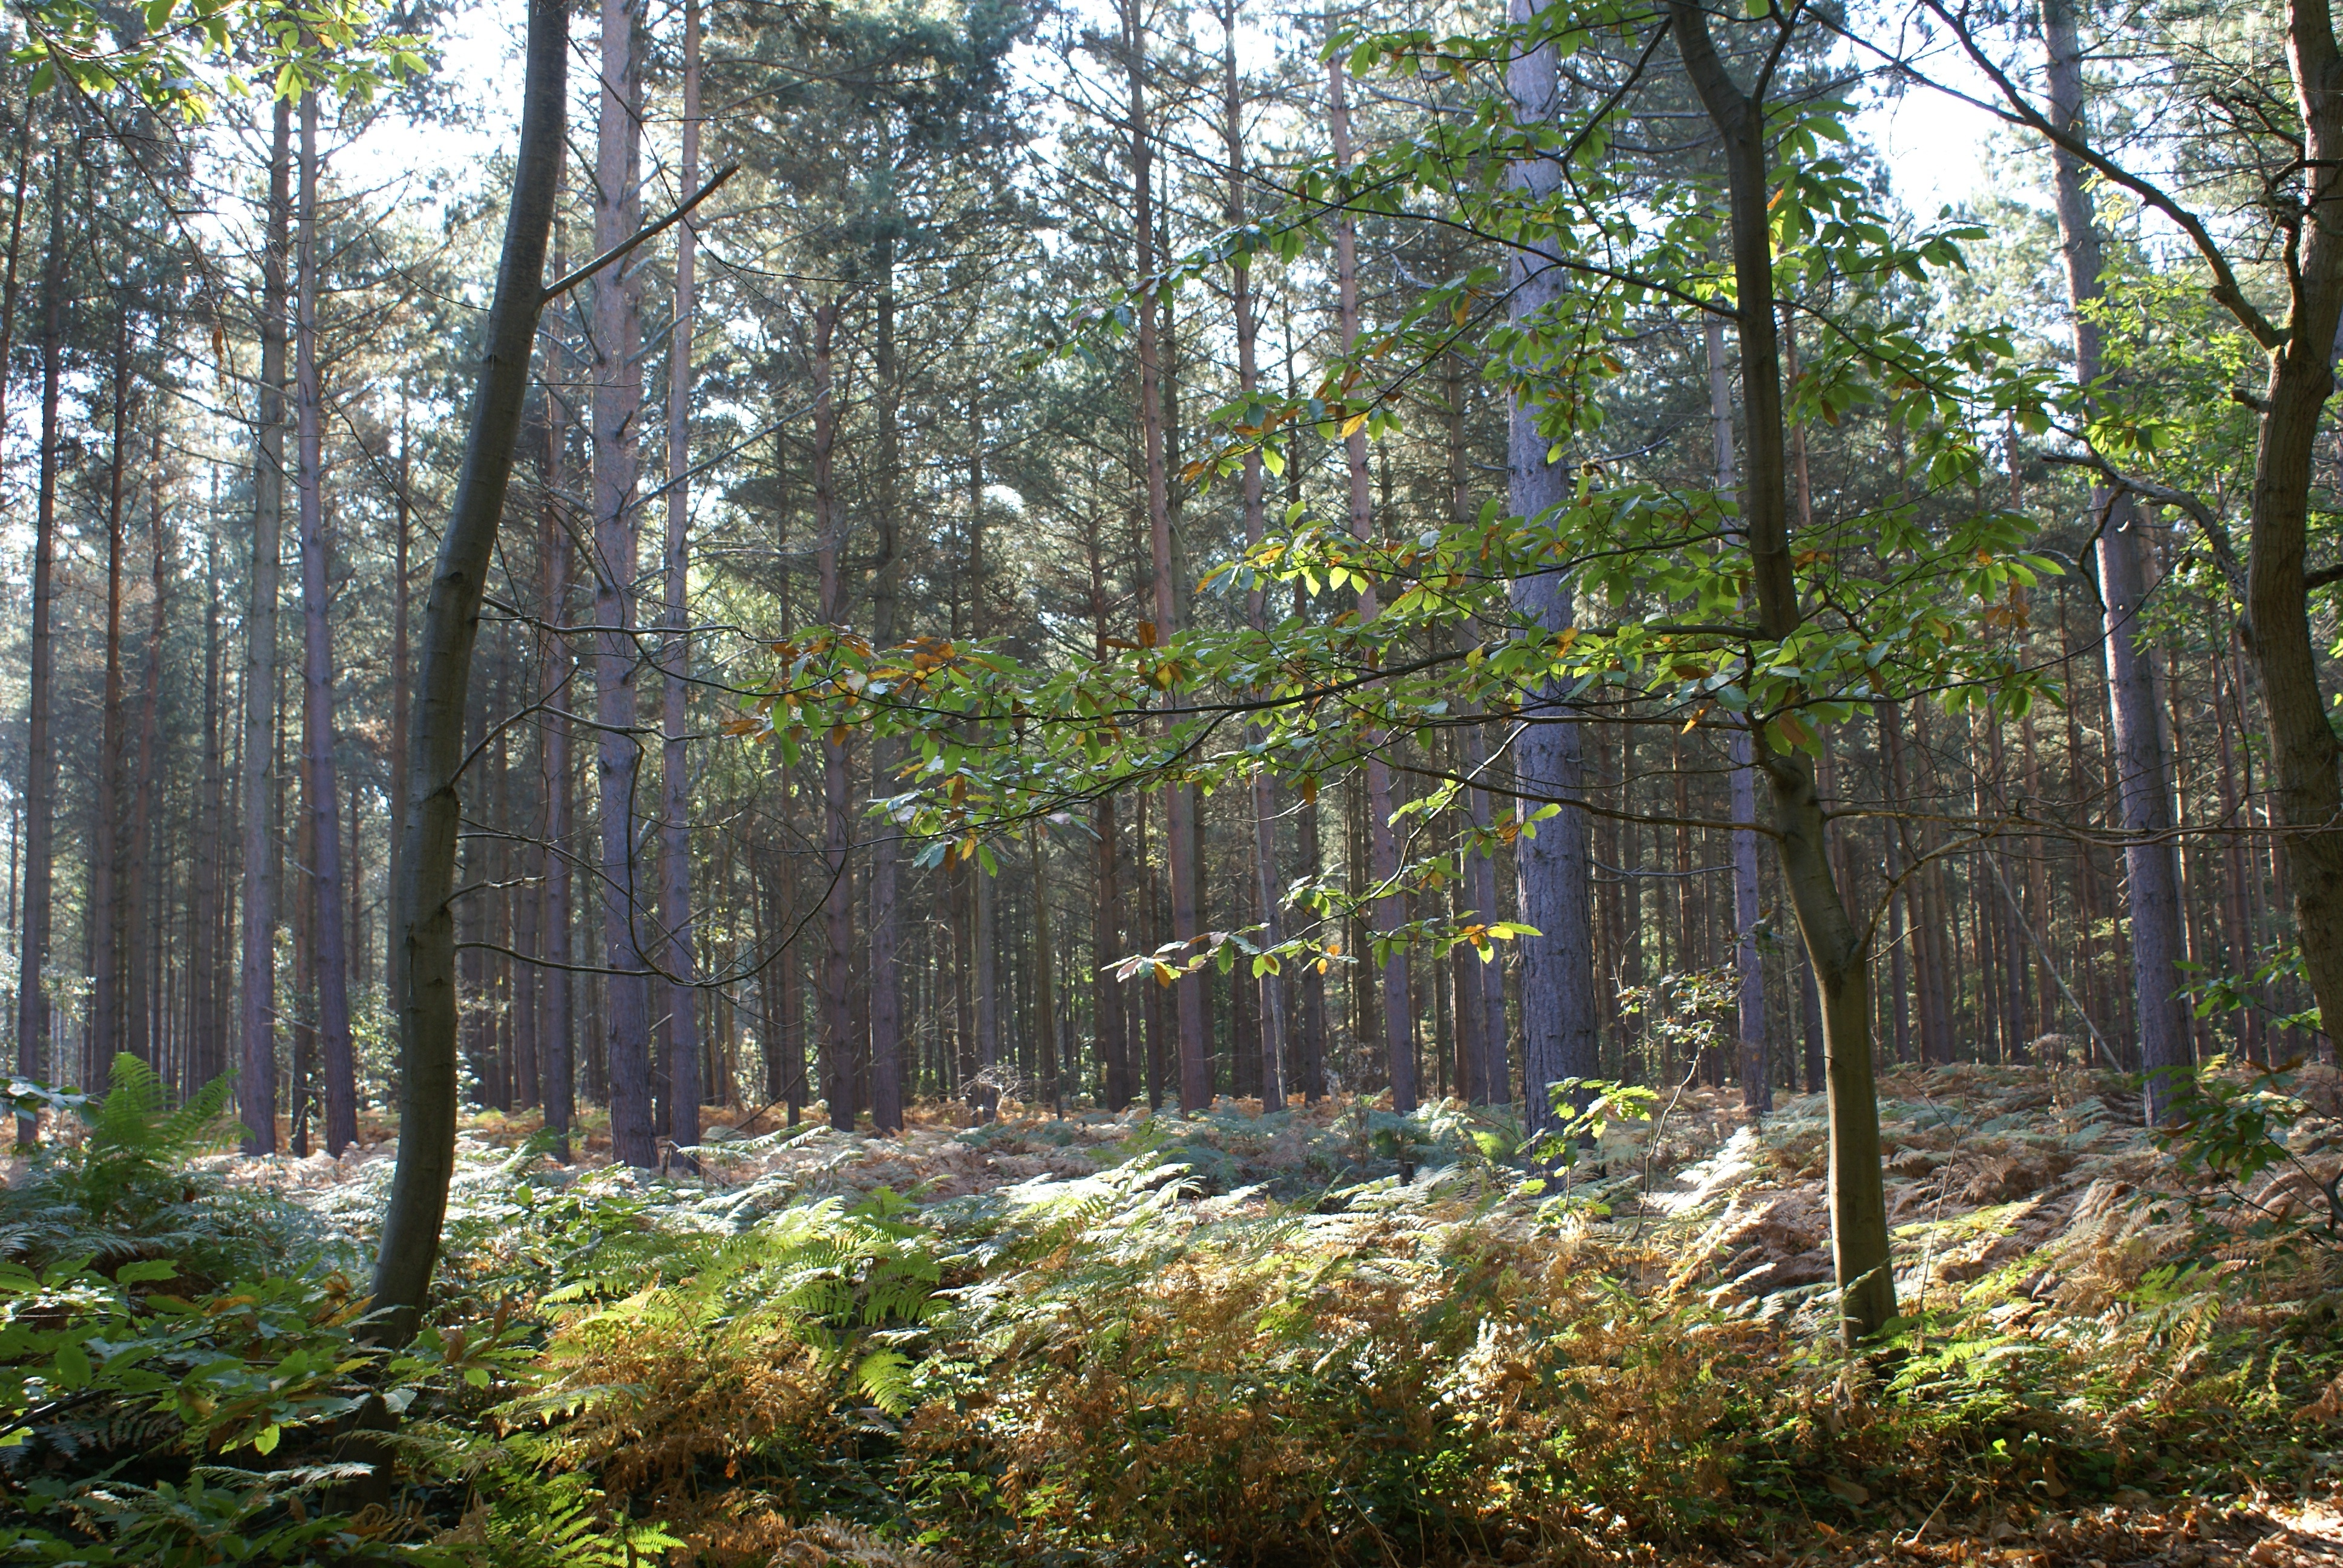 A view of trees in Blean Woods (Ray Lewis/PA)